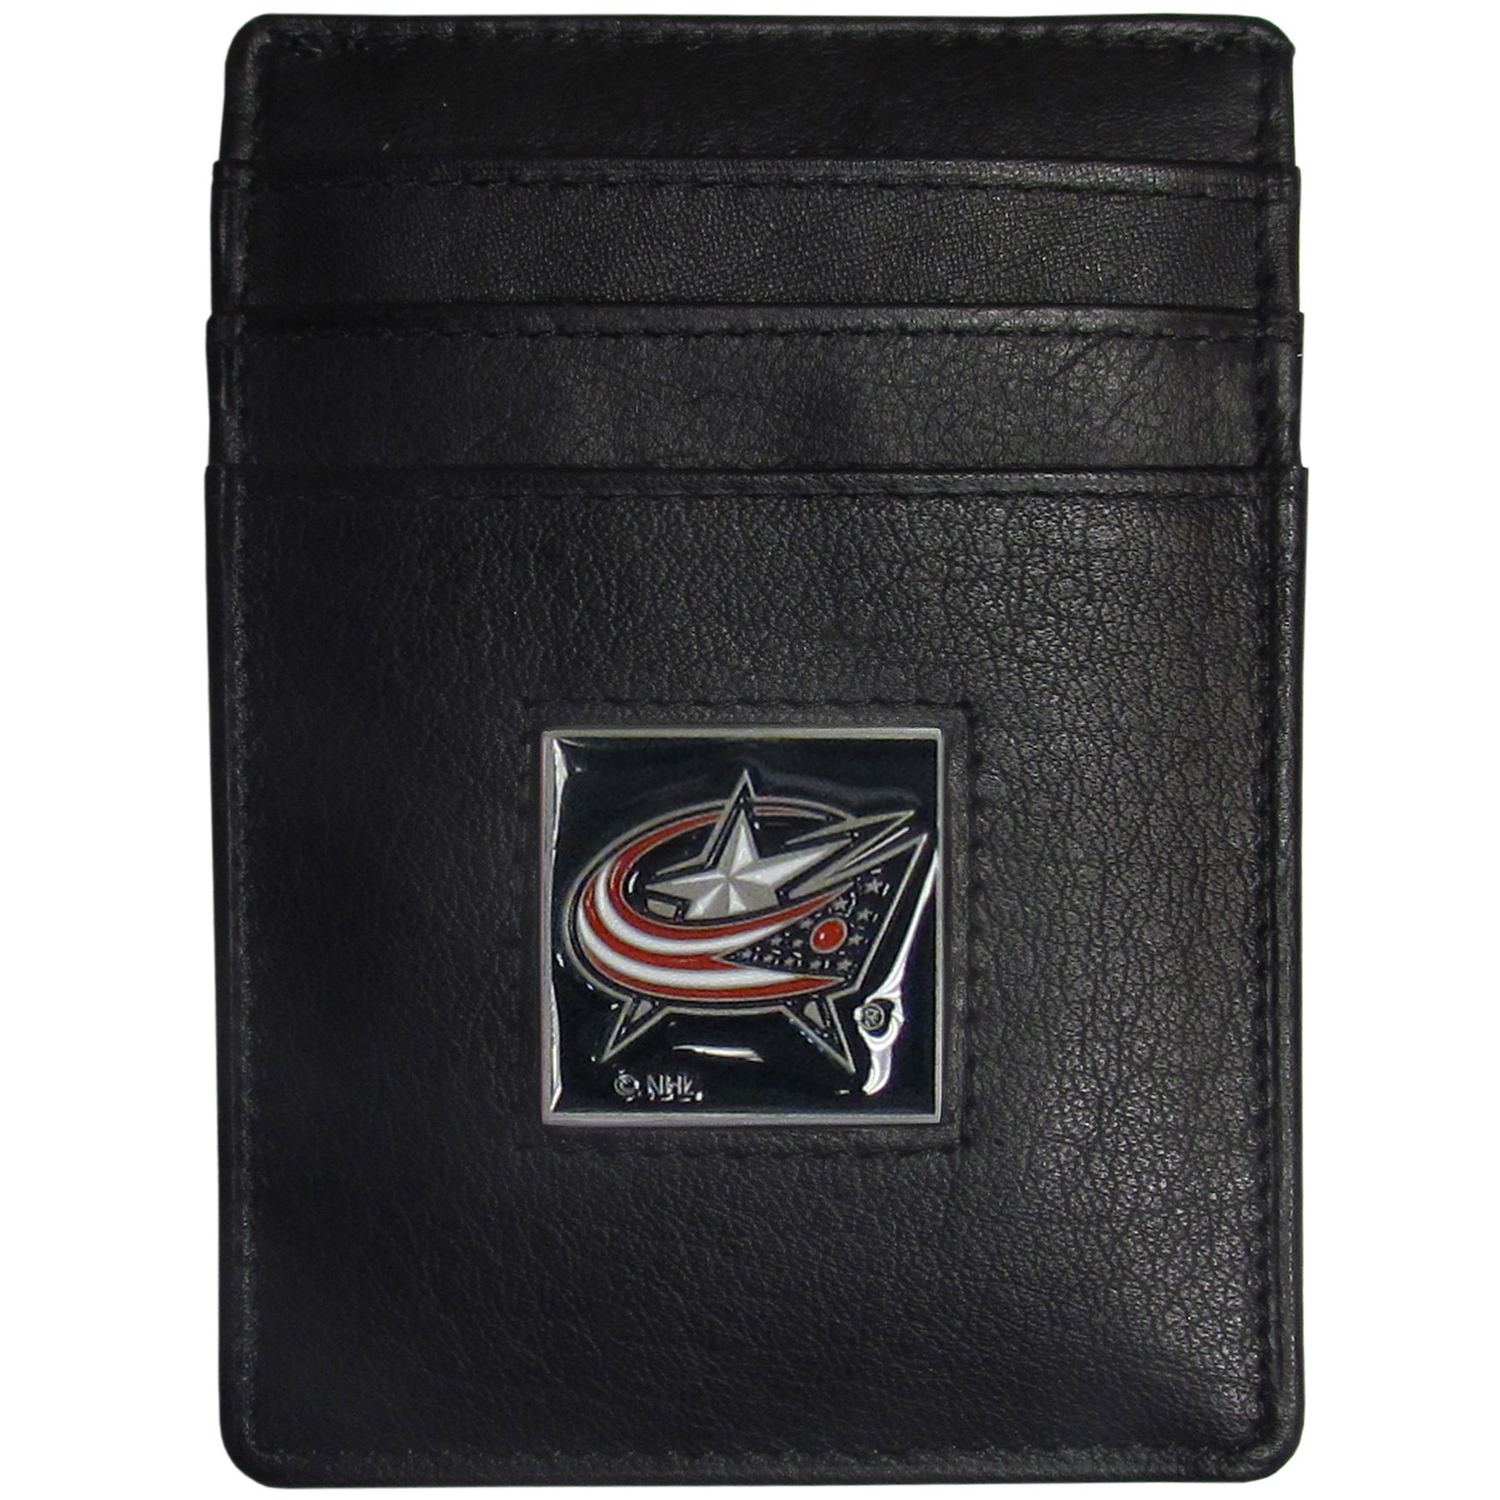 Columbus Blue Jackets® Leather Money Clip/Cardholder - Our officially licensed Money Clip/Card Holders won't make you choose between paper or plastic because they stow both easily. Features our sculpted and enameled Columbus Blue Jackets® emblem on the front of the wallet.